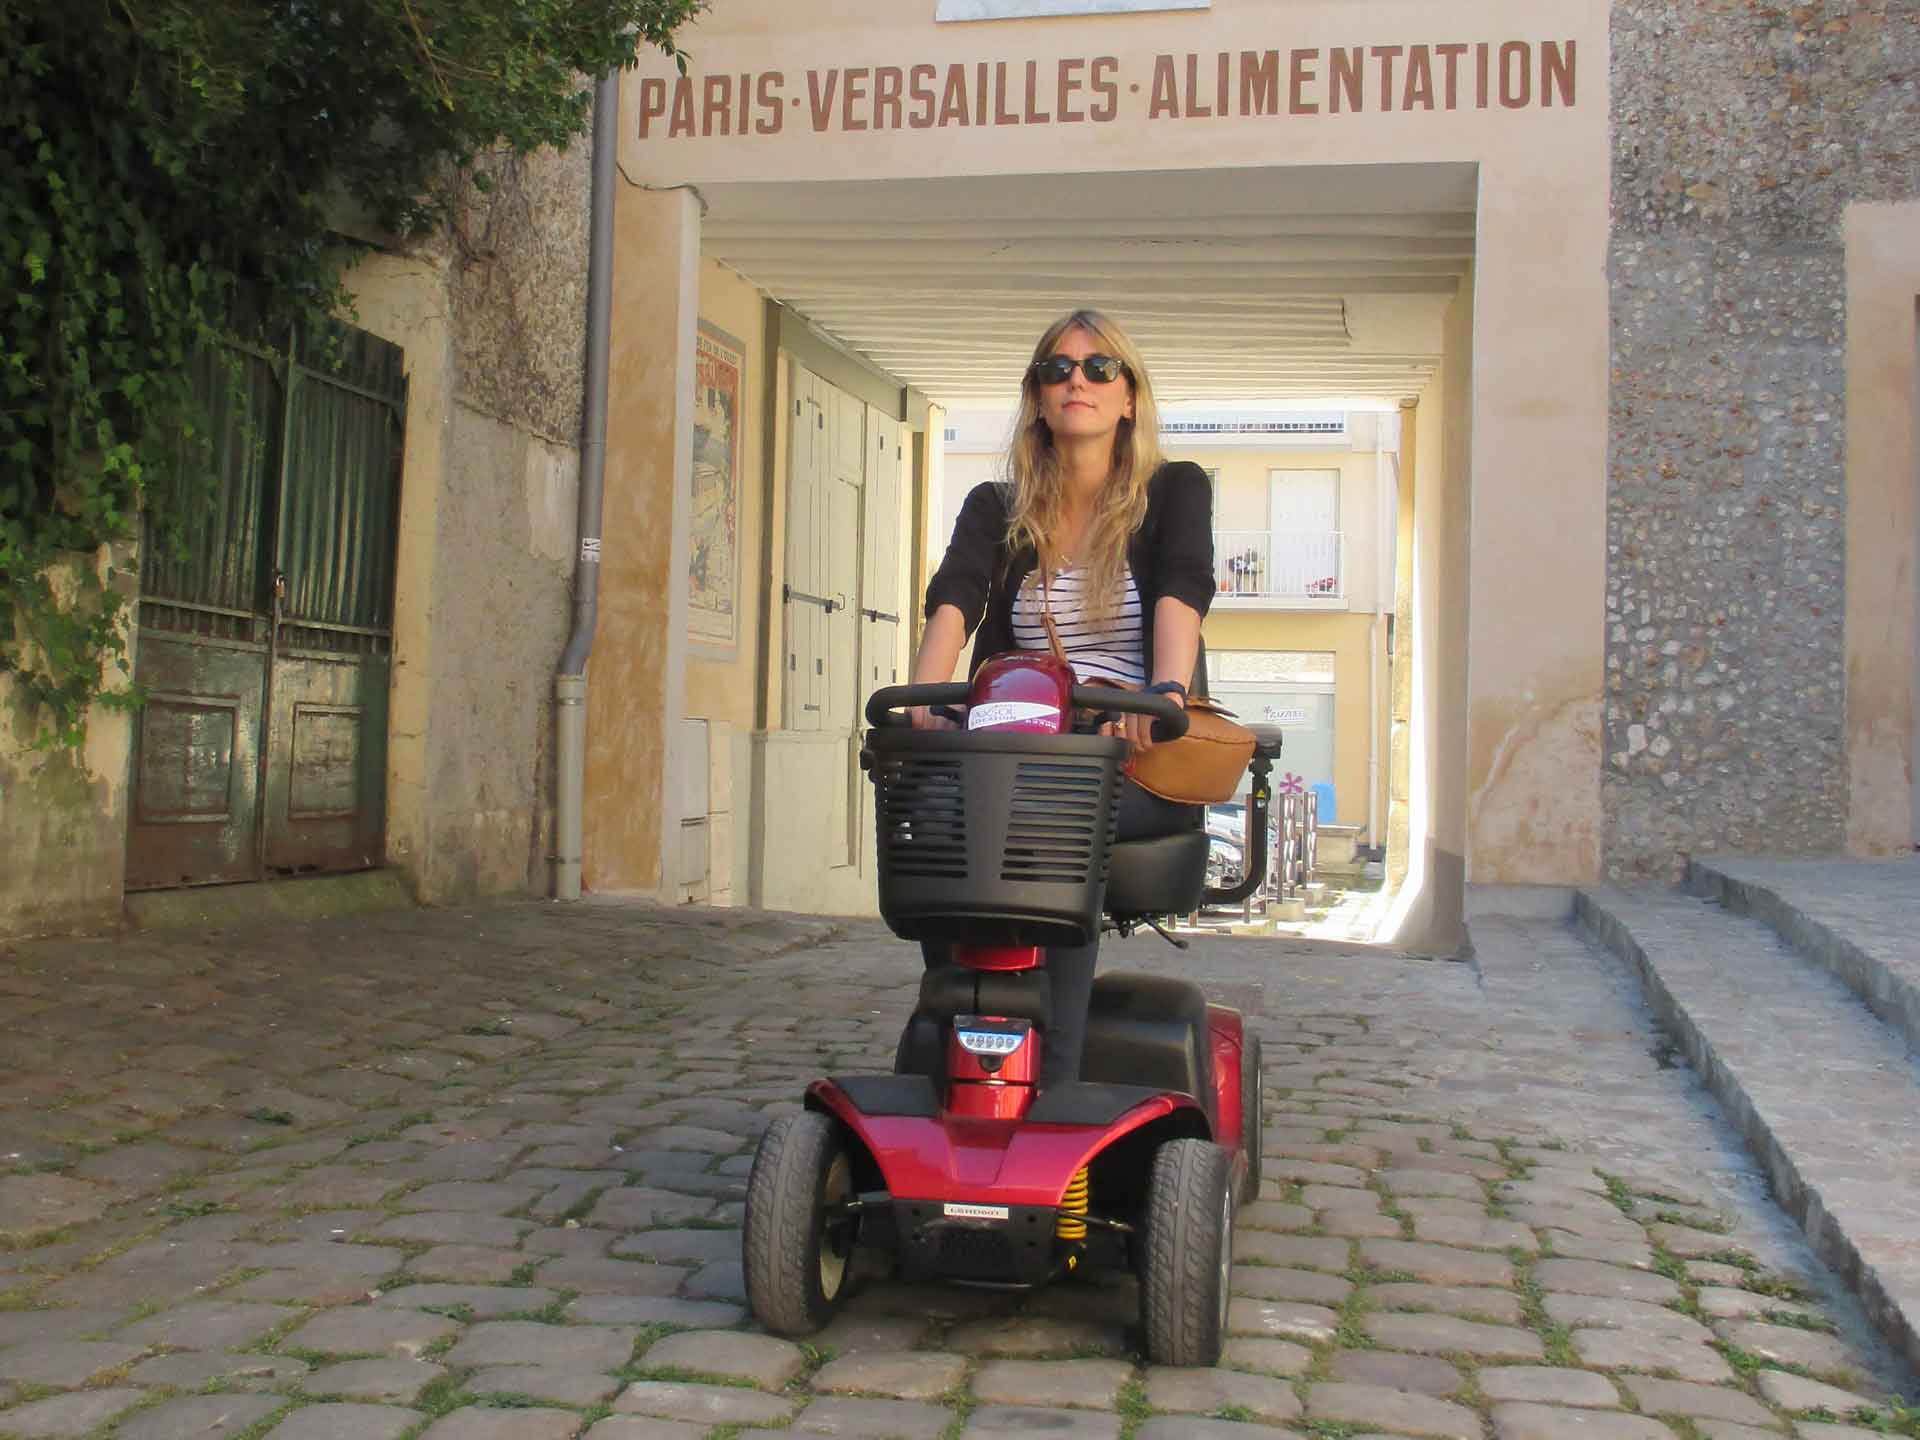 Hire an electric scooter for the handicapped - Ideal for tourism and visiting